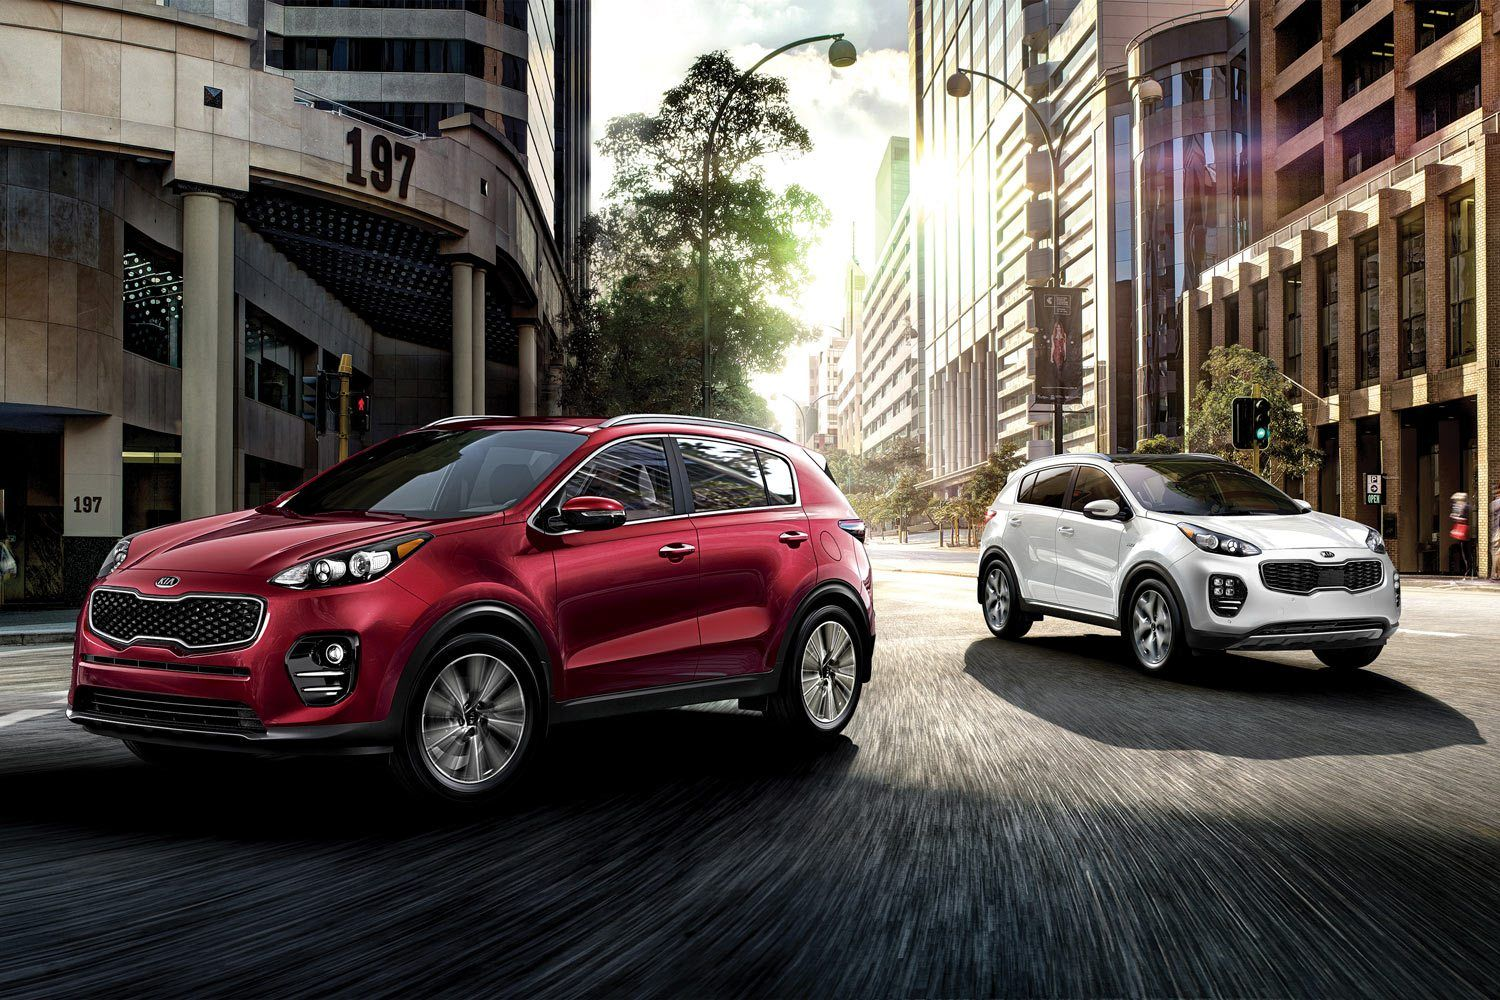 2020 Kia Sportage Changes Release Date And Price Rumors New Car Rumor